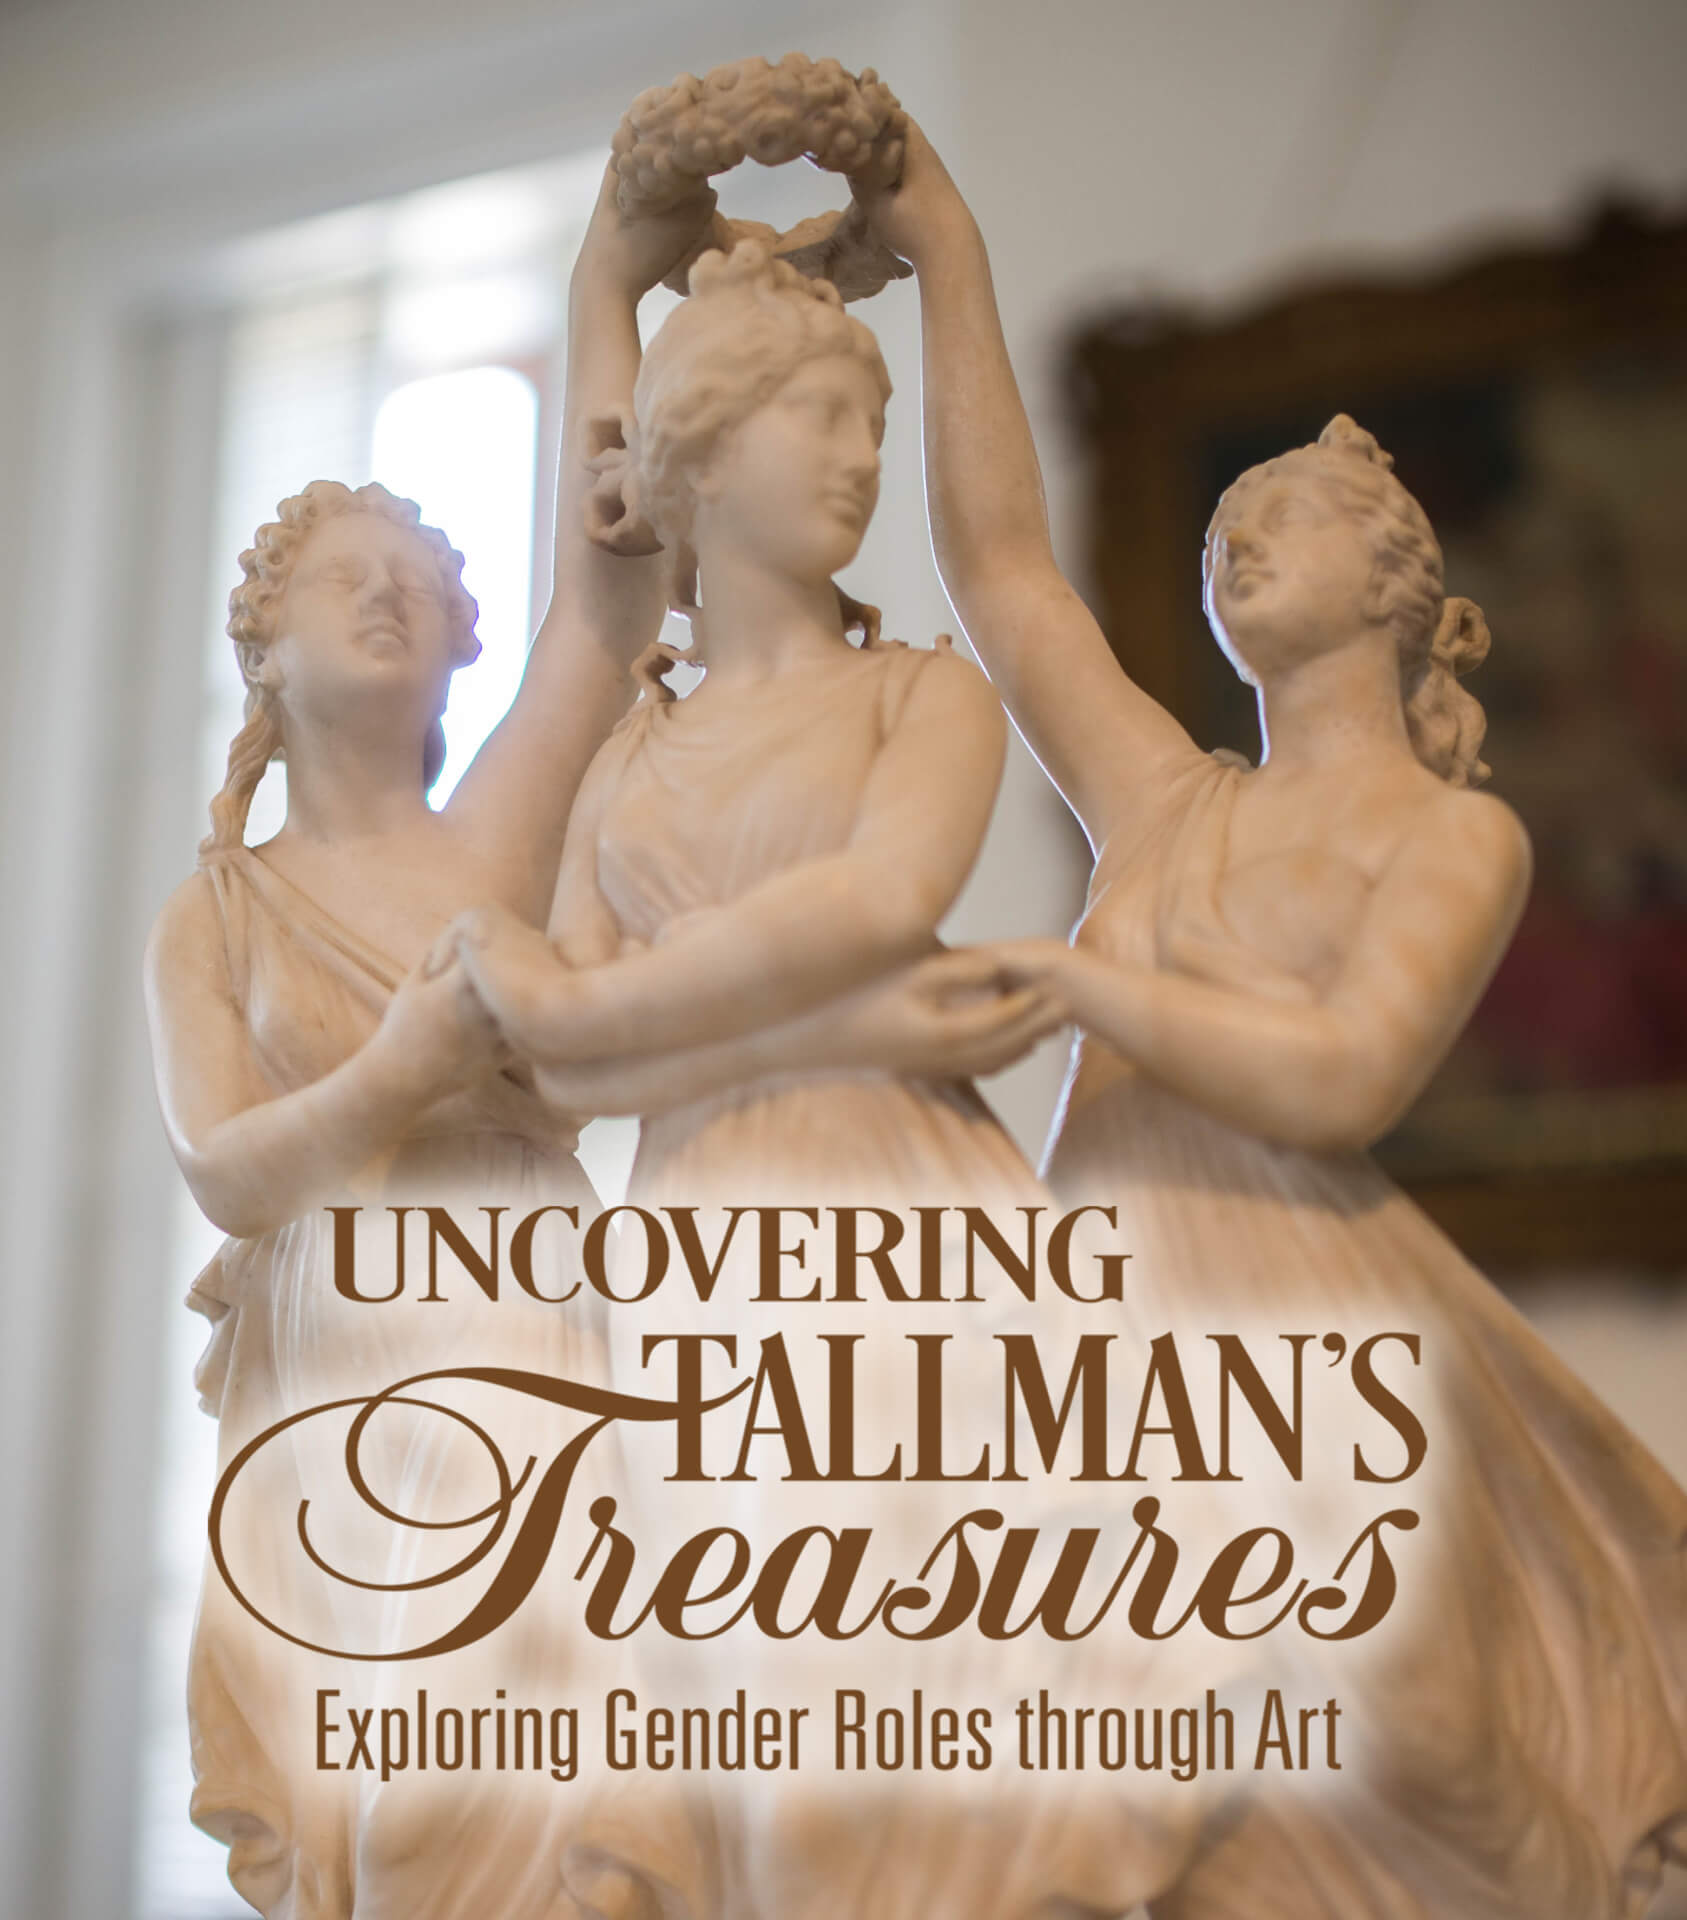 Uncovering Tallman's Treasures